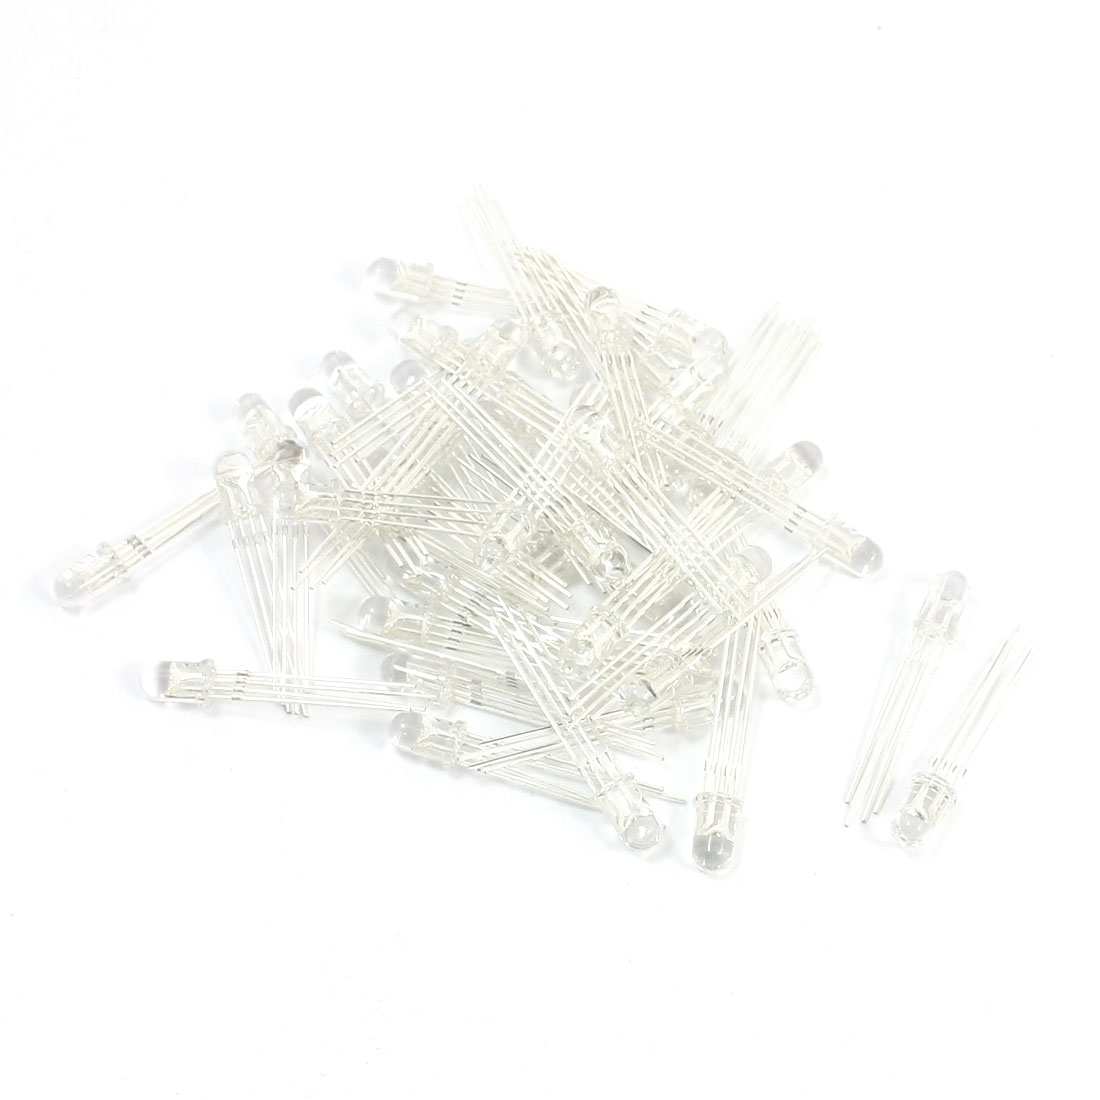 50 Pcs 5mm Head Dia Common Anode 4 Pin Terminals Red Green Blue LED Light Emitting Diodes DC2.2-3.0V